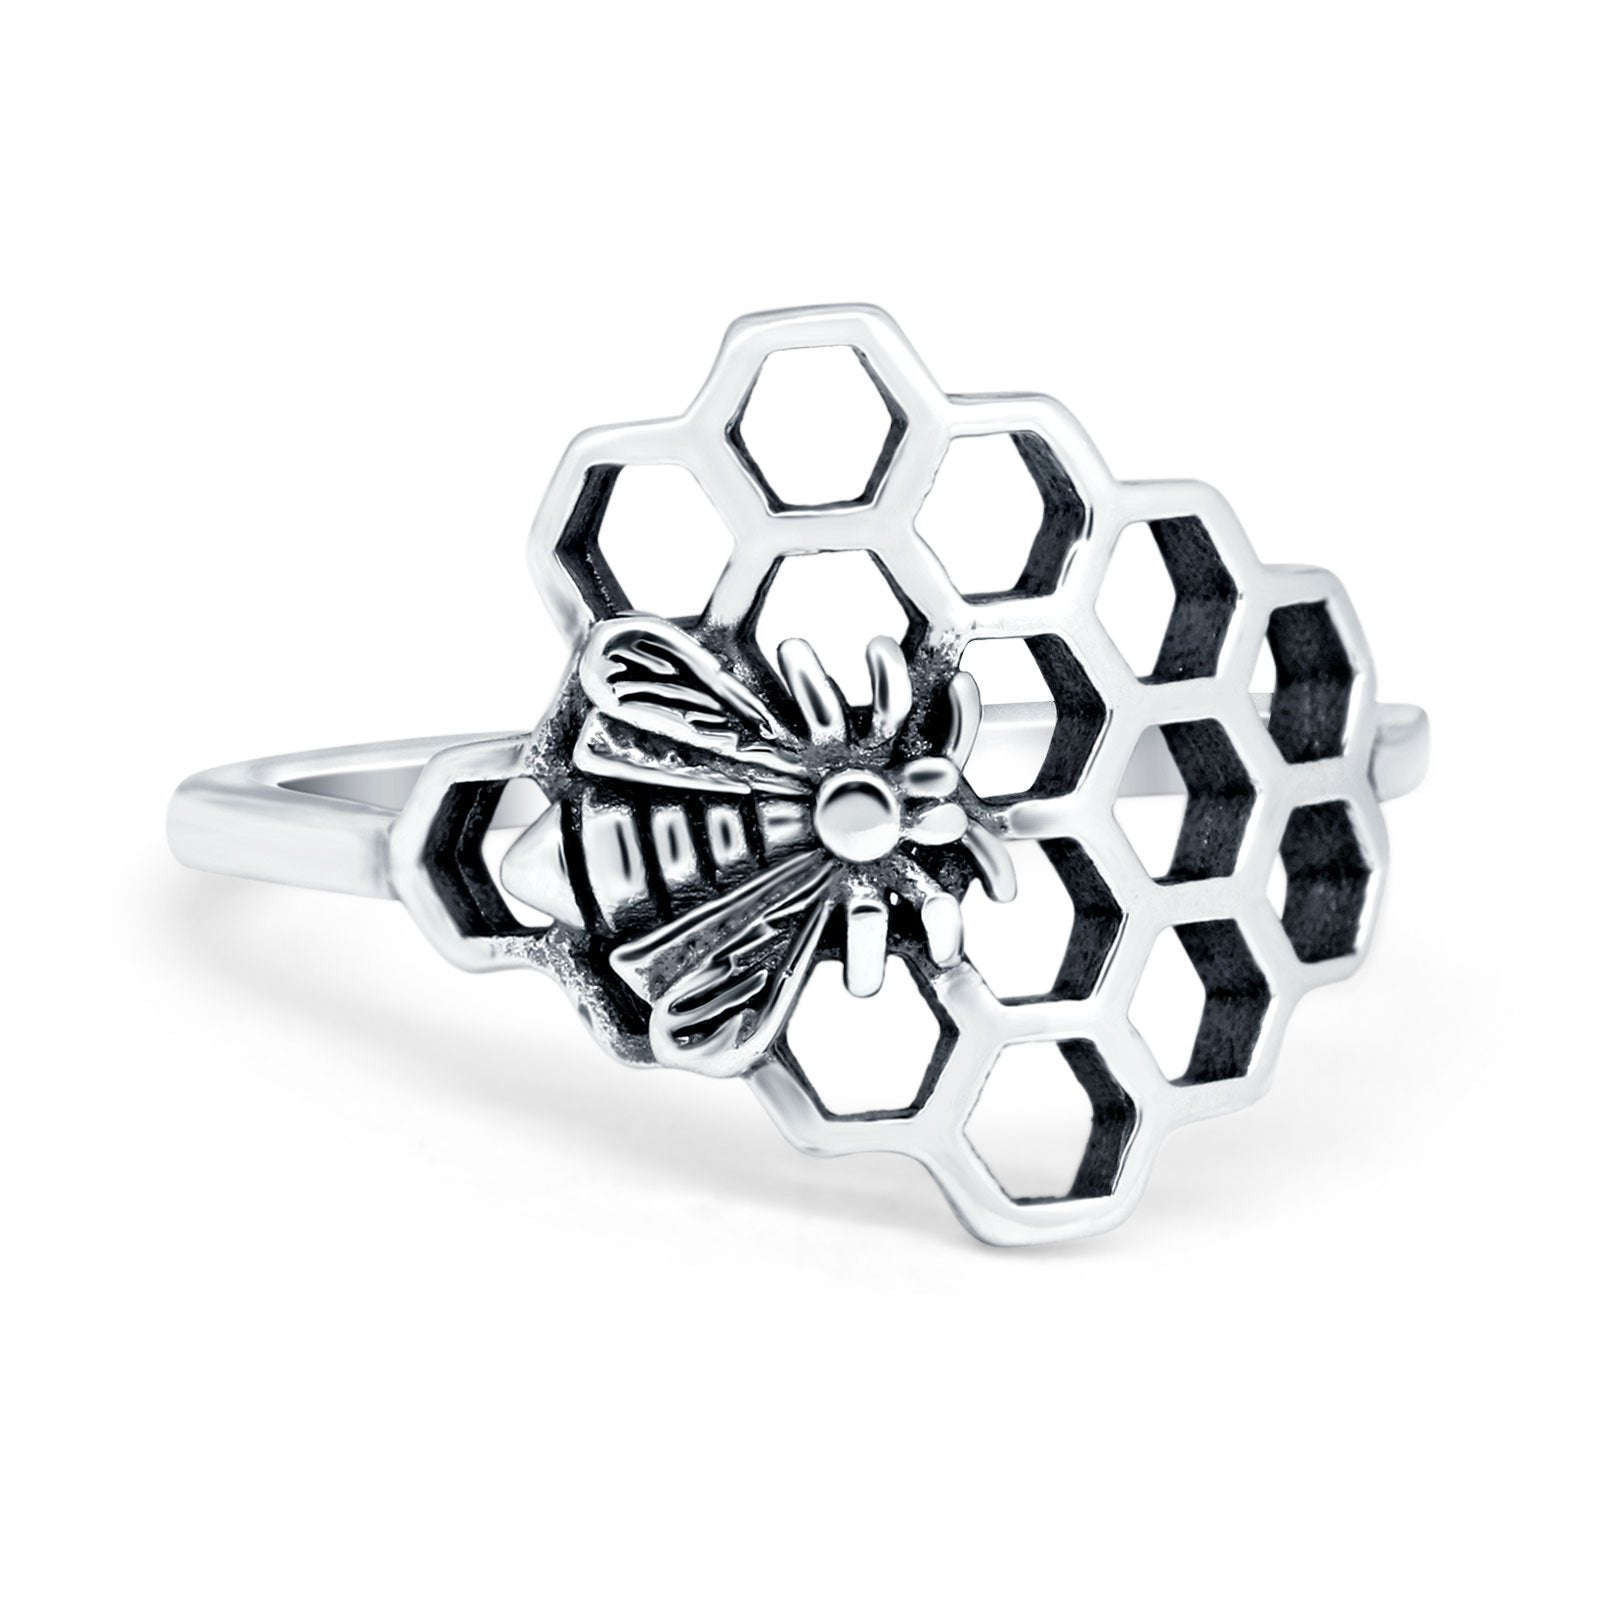 Bee and Honeycomb Plain Ring Band Oxidized 925 Sterling Silver